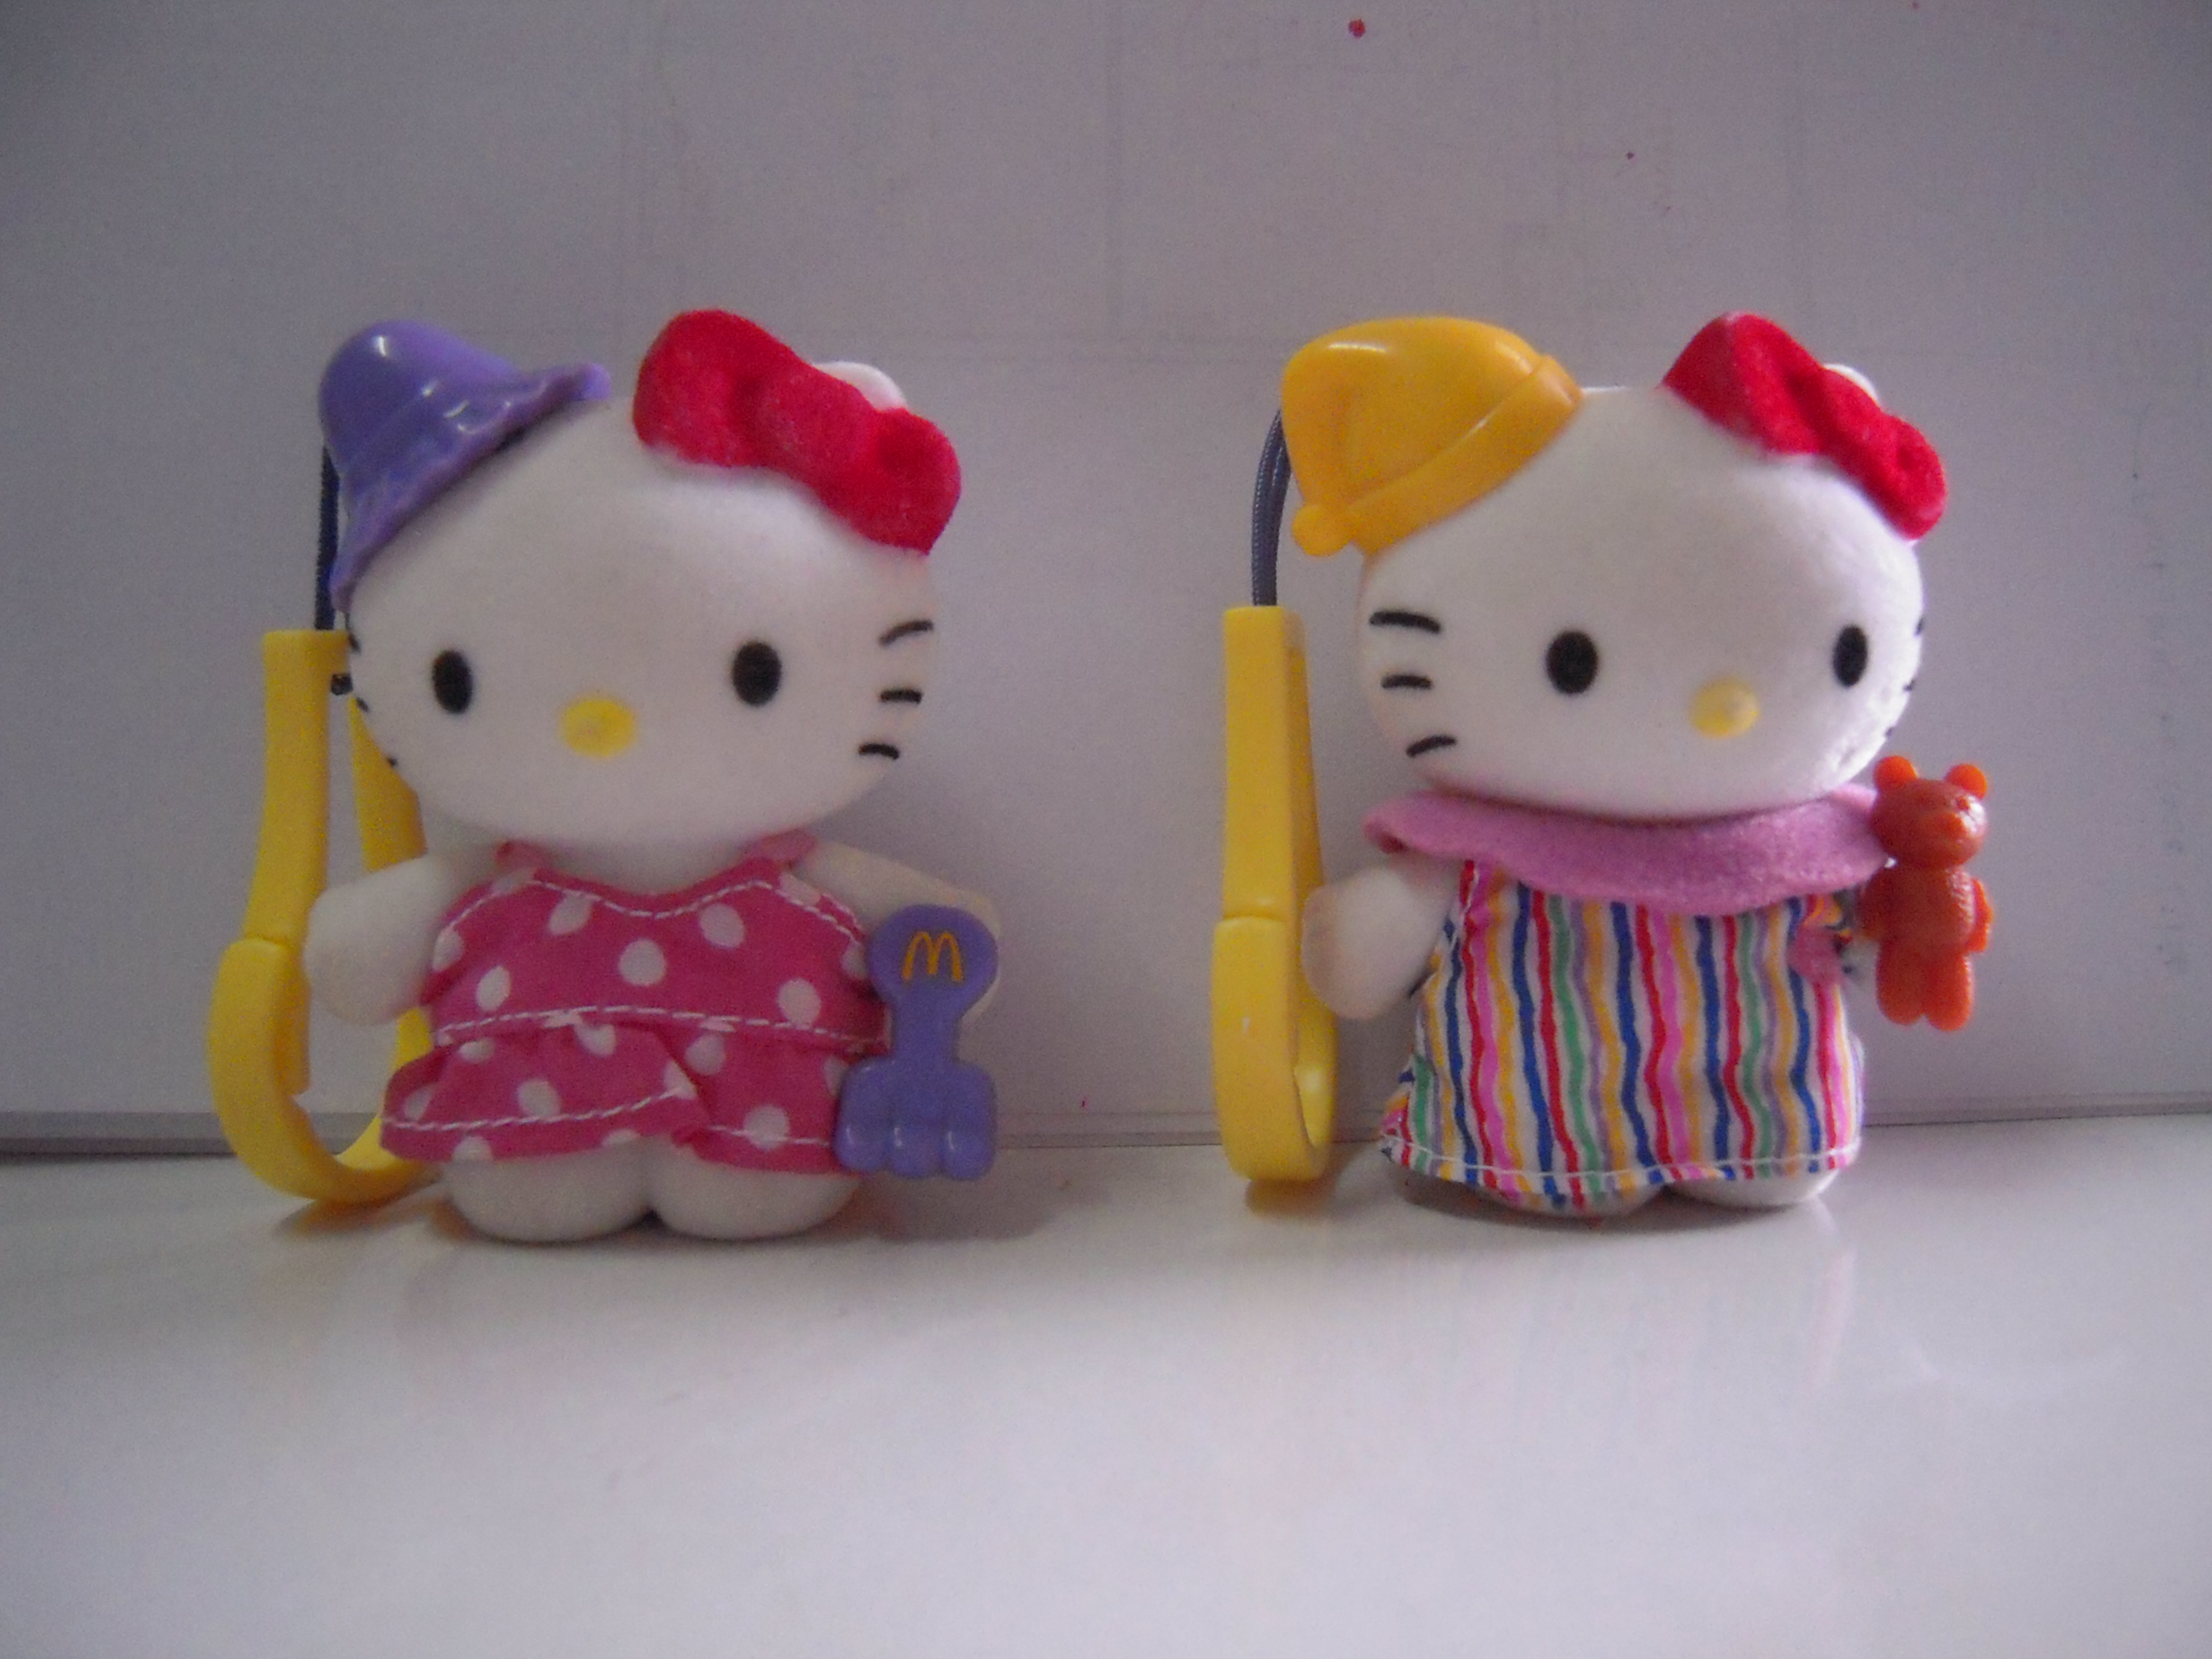 FOR SALE: Hello Kitty Key Chain